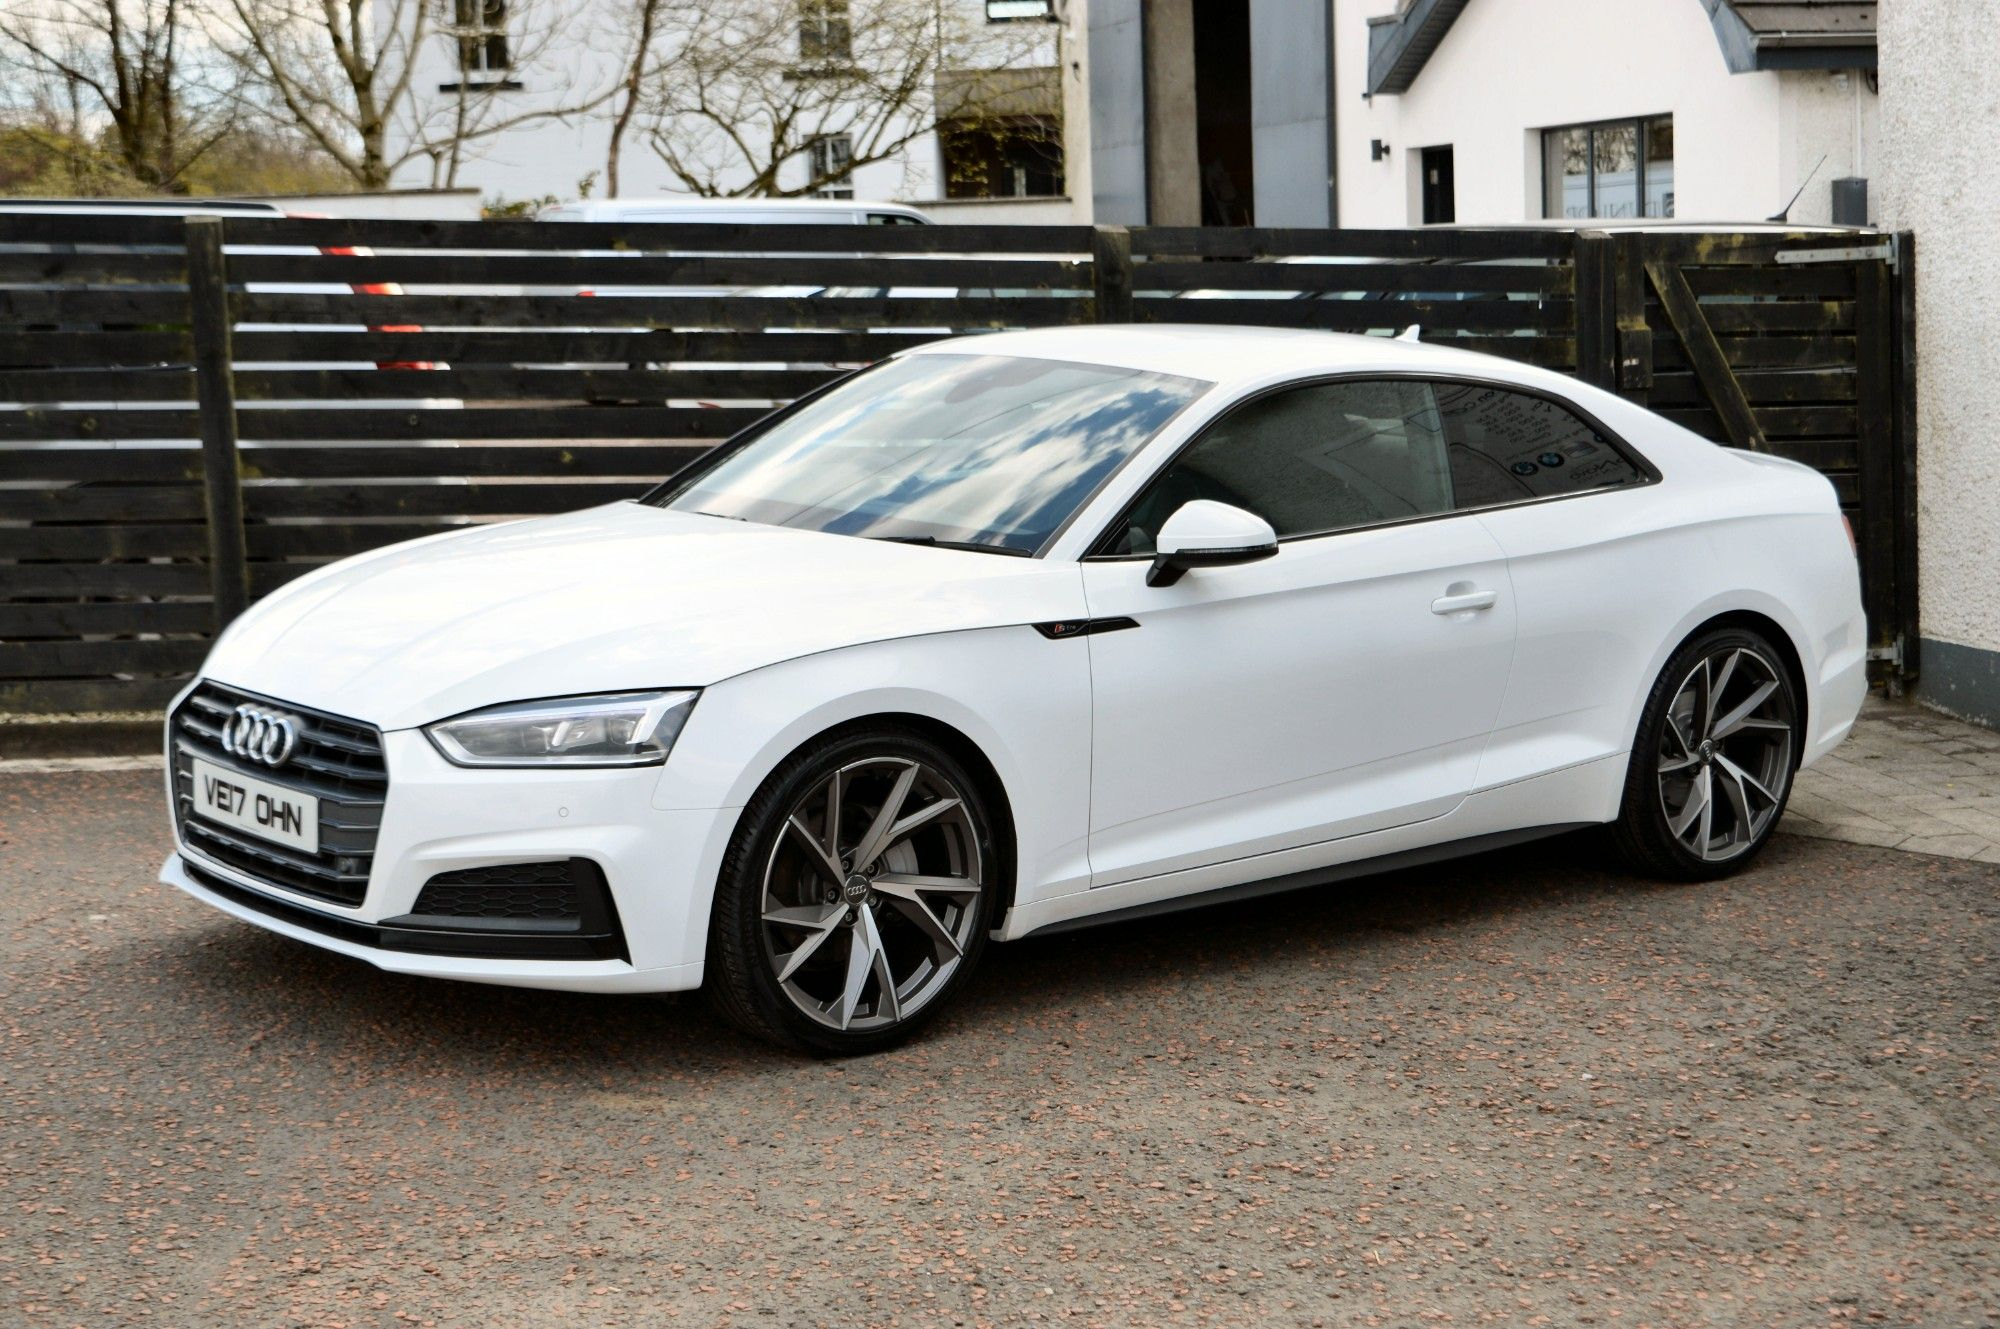 USED 2017 17 AUDI A5 2.0 TDI S LINE 2d 188 BHP 6 MONTHS RAC WARRANTY FREE + 12 MONTHS ROAD SIDE RECOVERY!